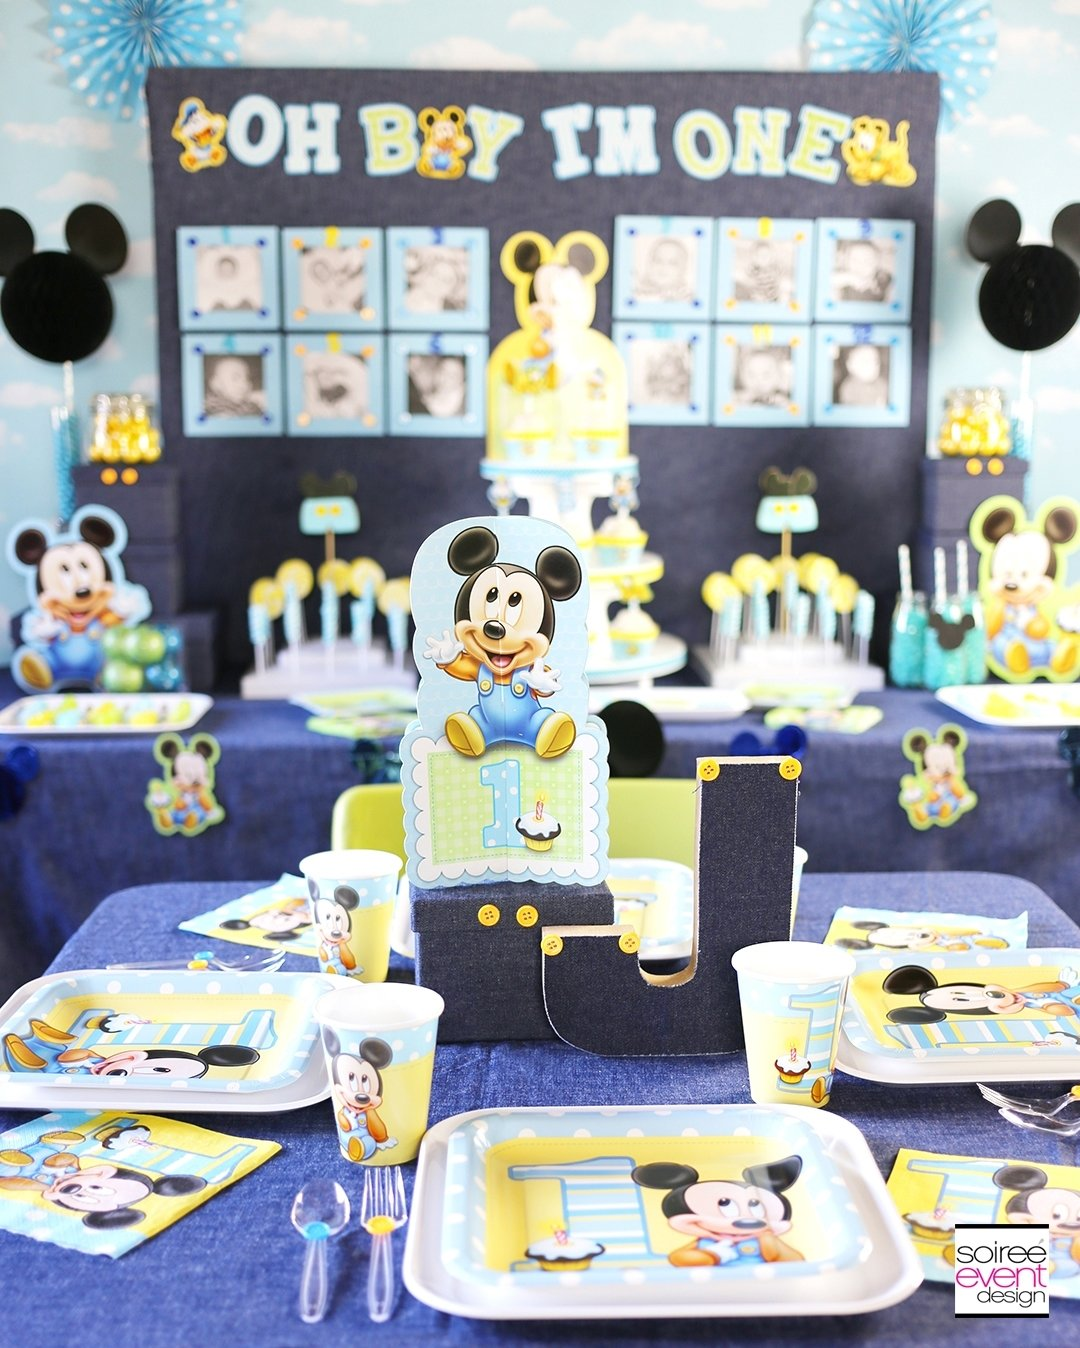 10 Pretty Birthday Ideas For 1 Year Old Boy Nonsensical Party Game